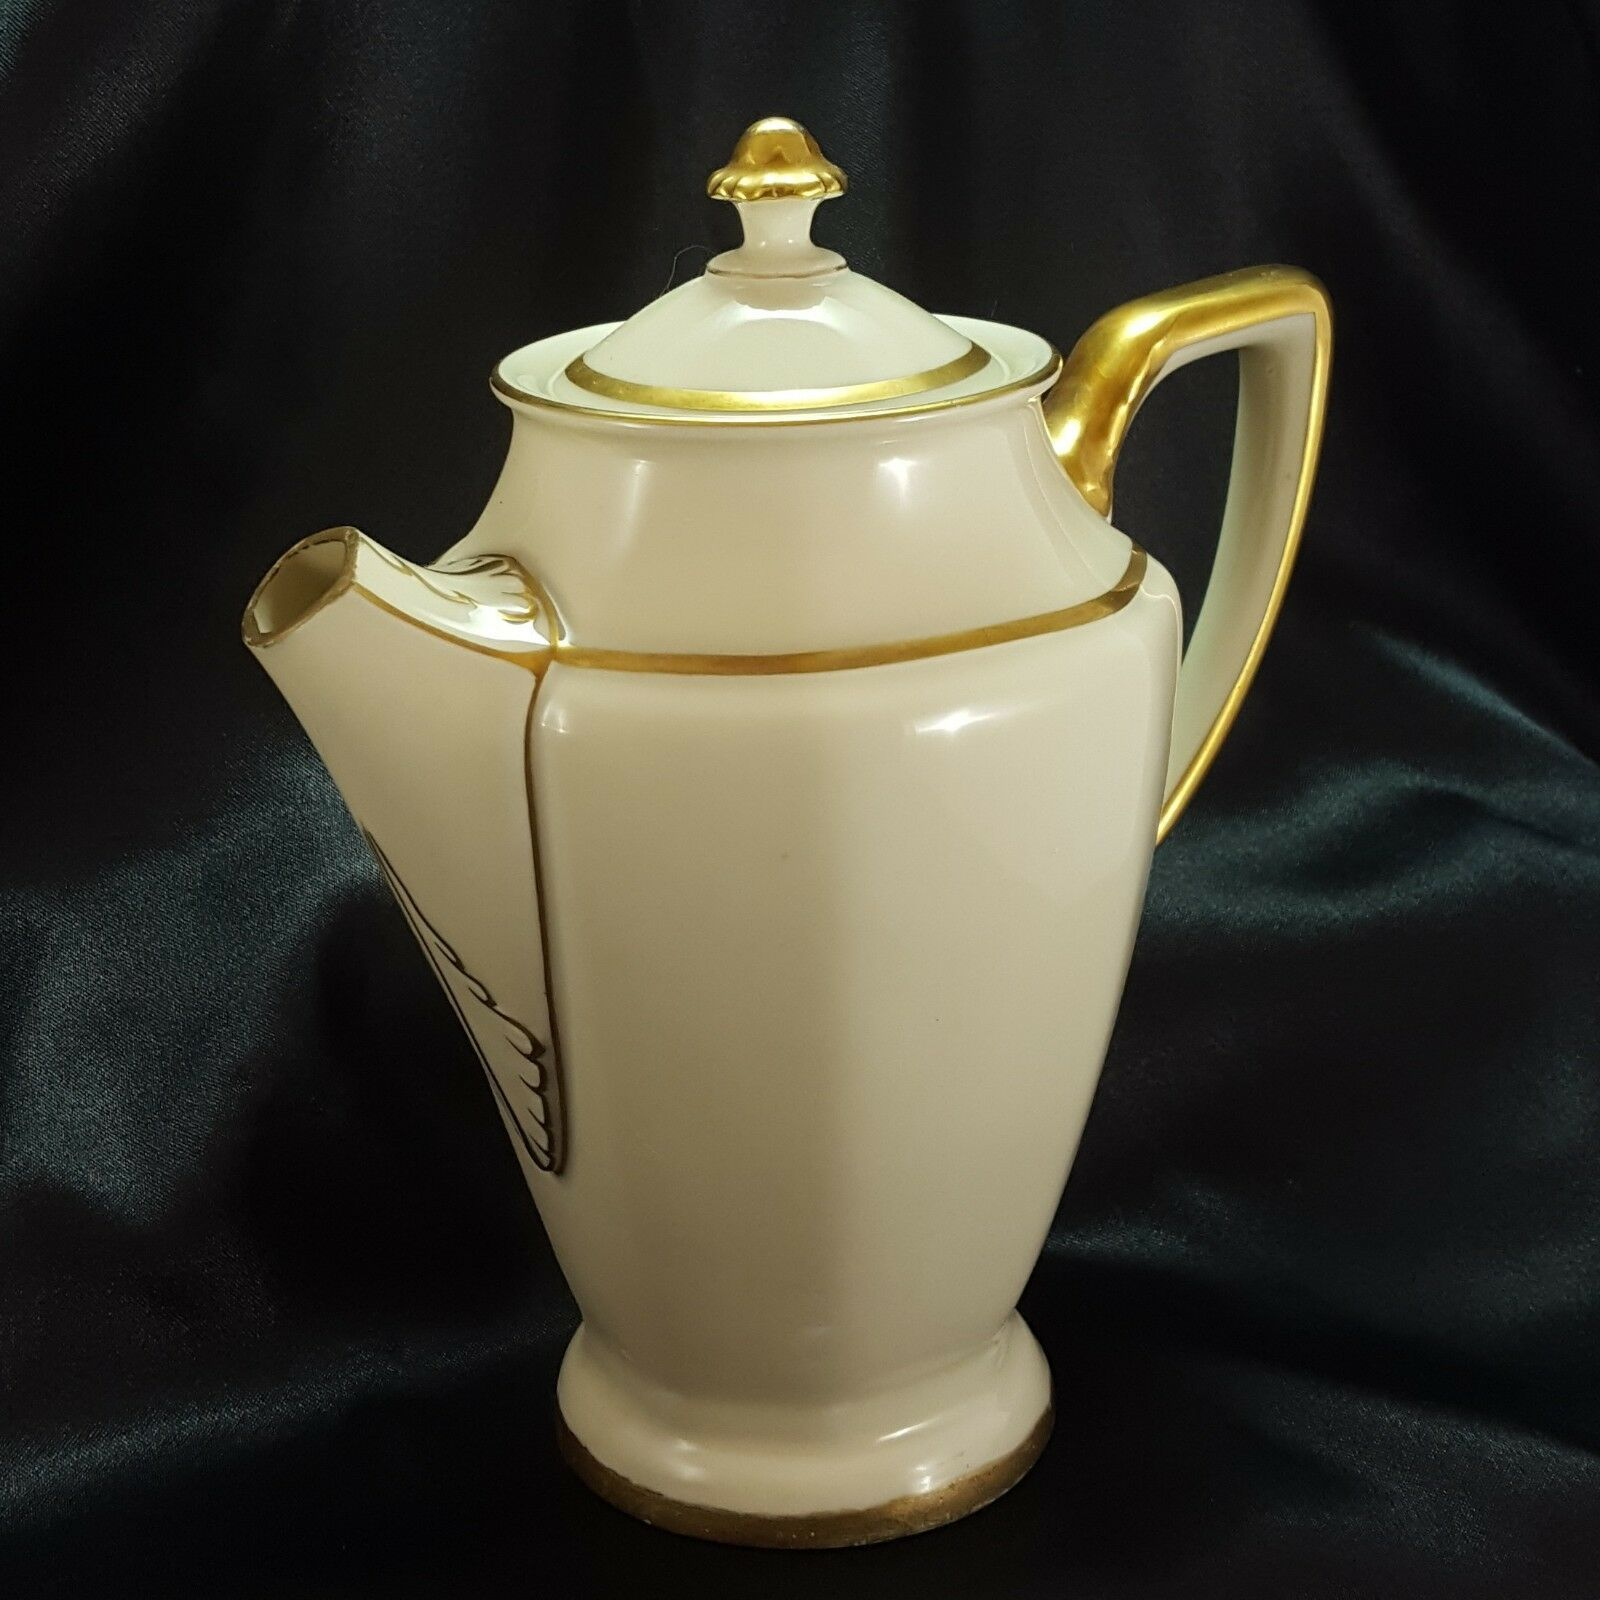 Primary image for Rosenthal Corona Chocolate Pot Art Deco Ivory Porcelain Gold Trim 24 oz ca 1940